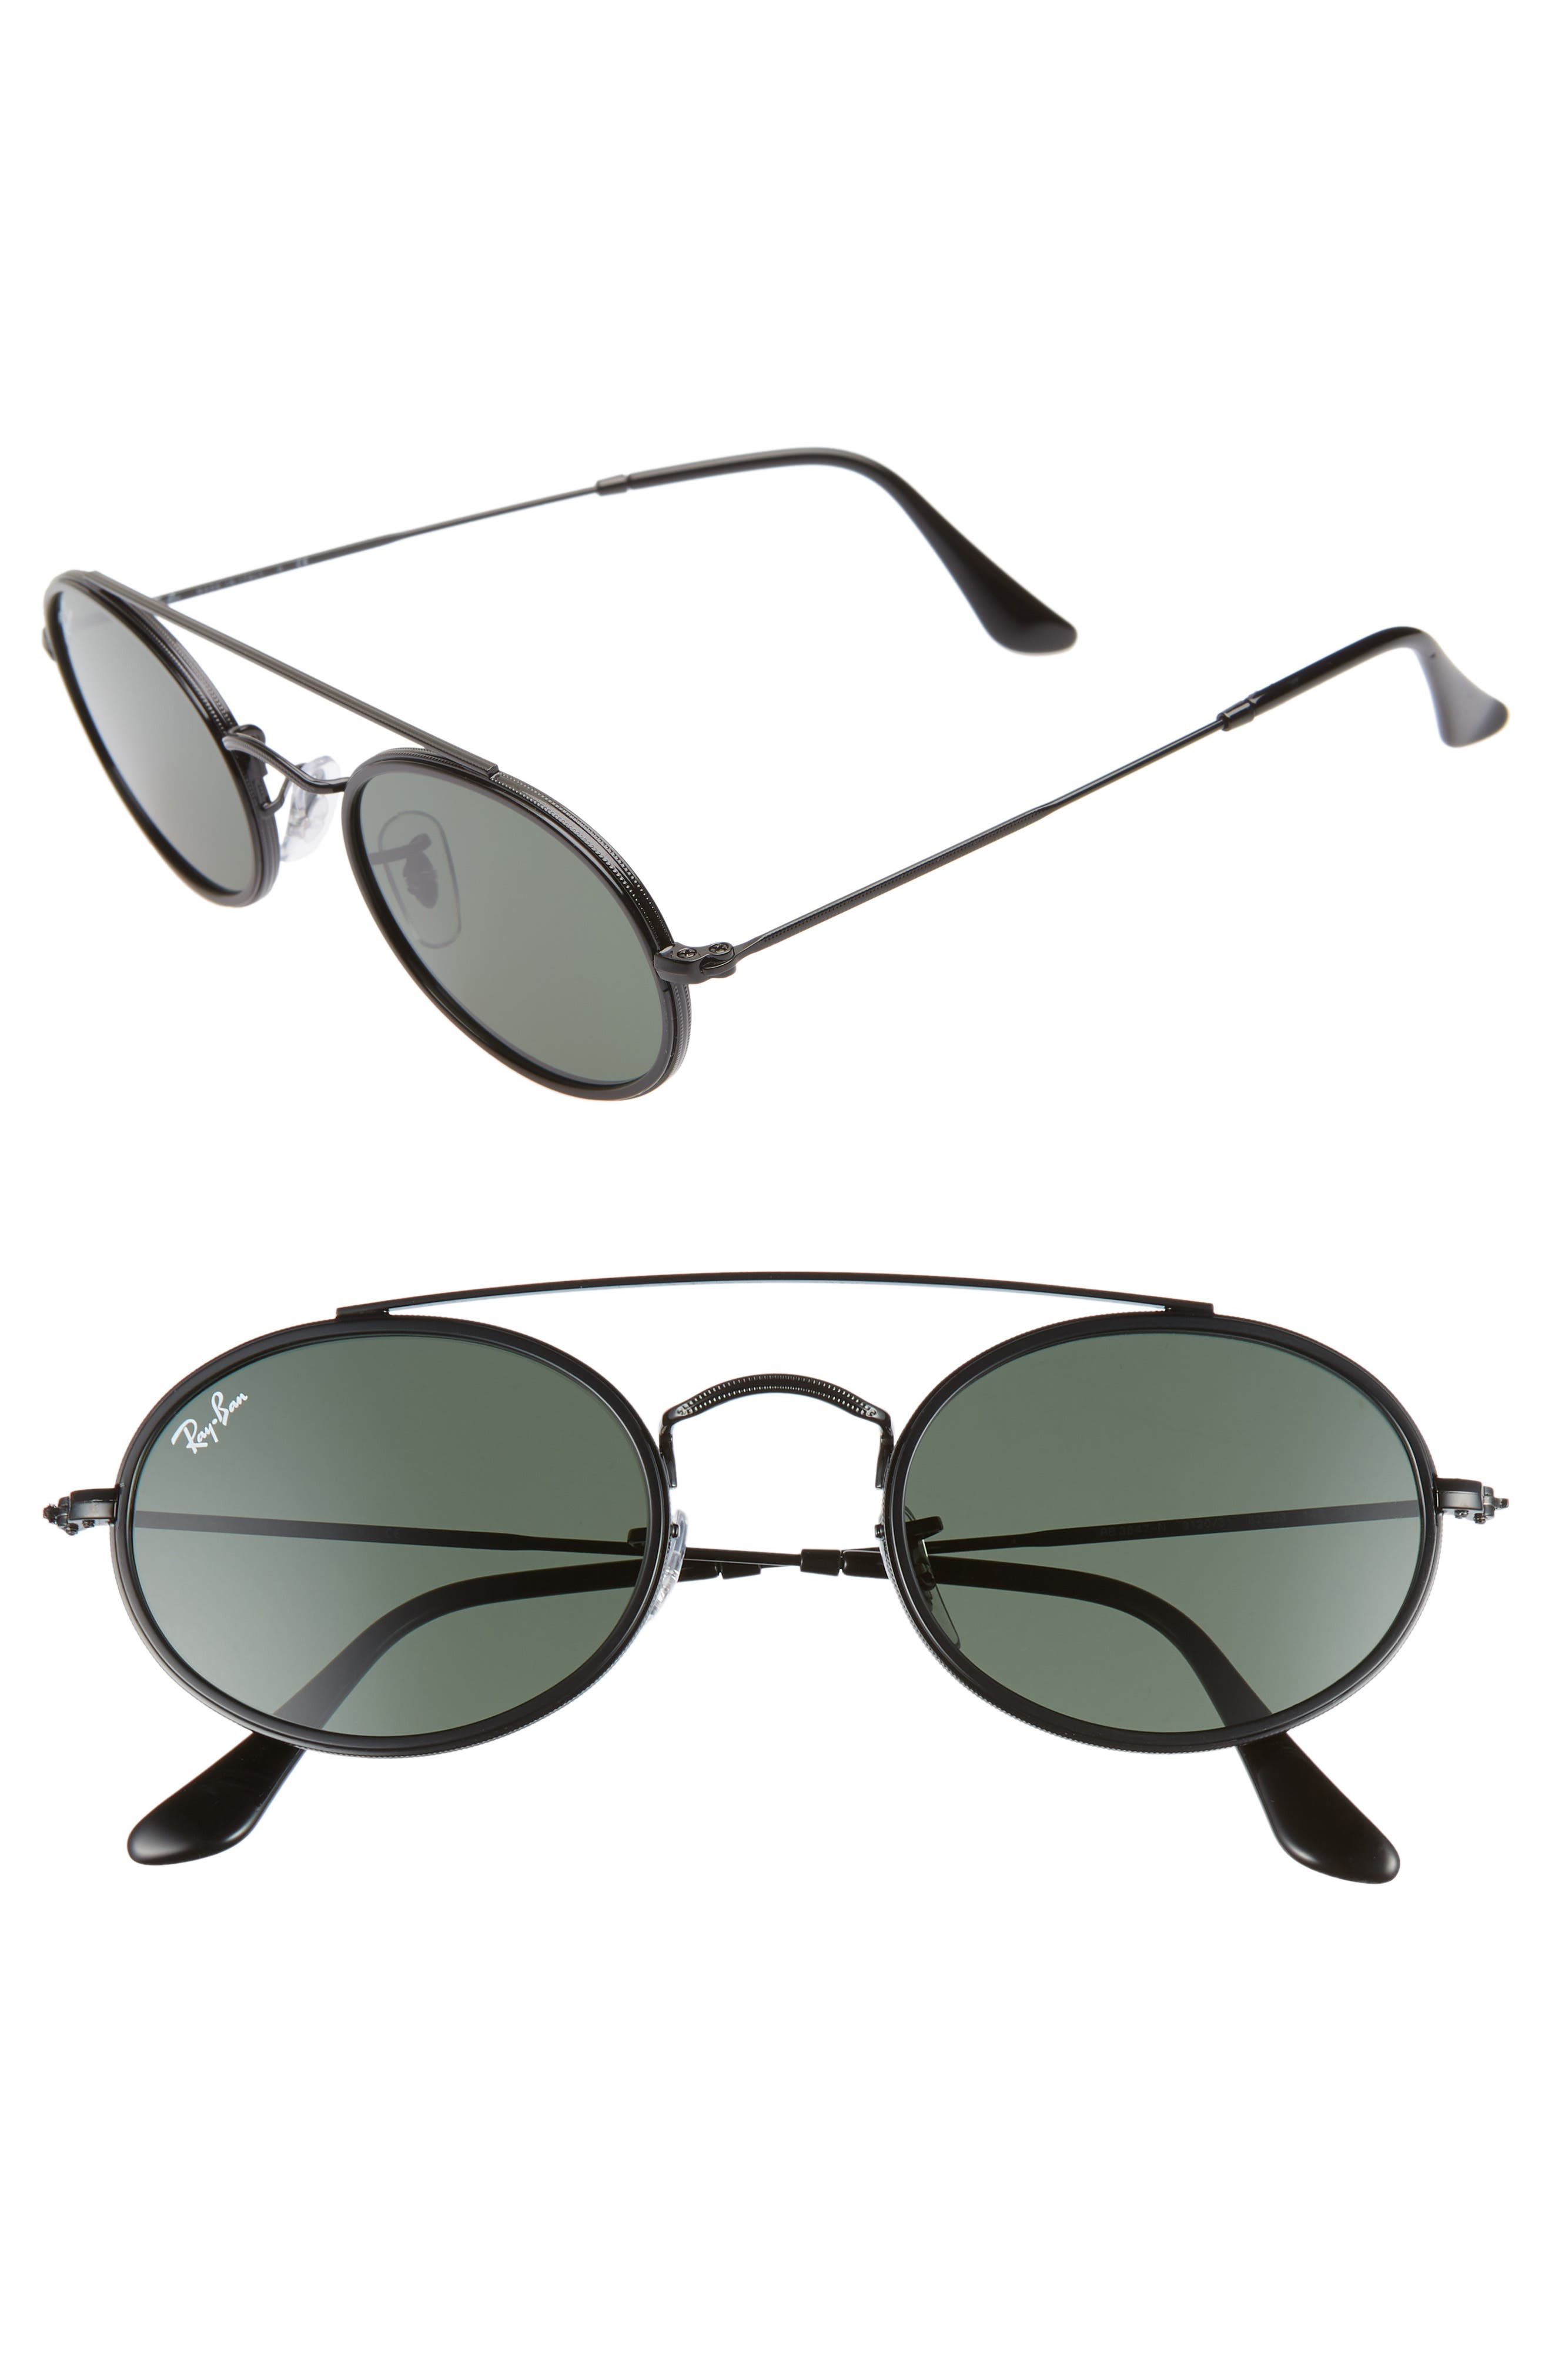 Ray-Ban Elite 52Mm Oval Sunglasses - Gold/ Green Solid